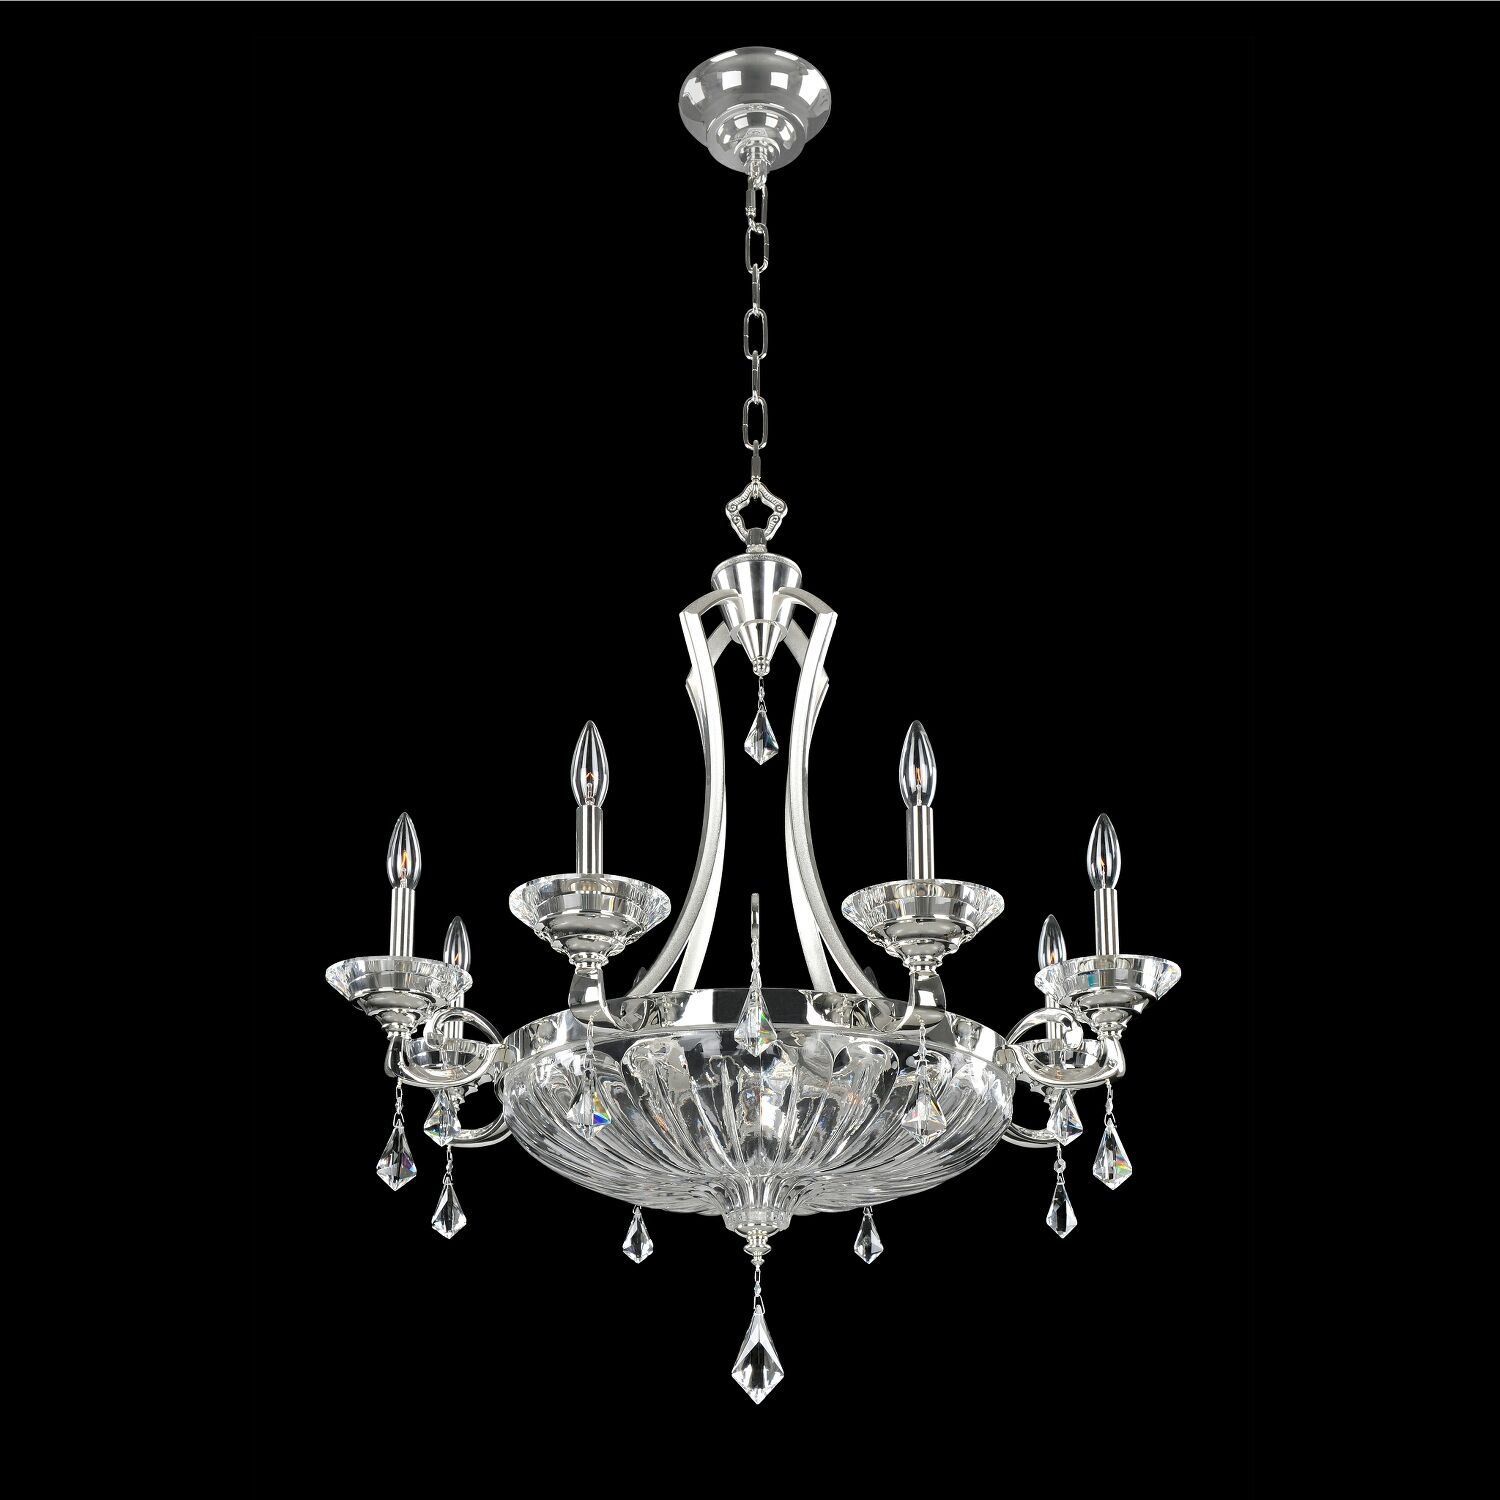 Orecchini 12-Light Chandelier